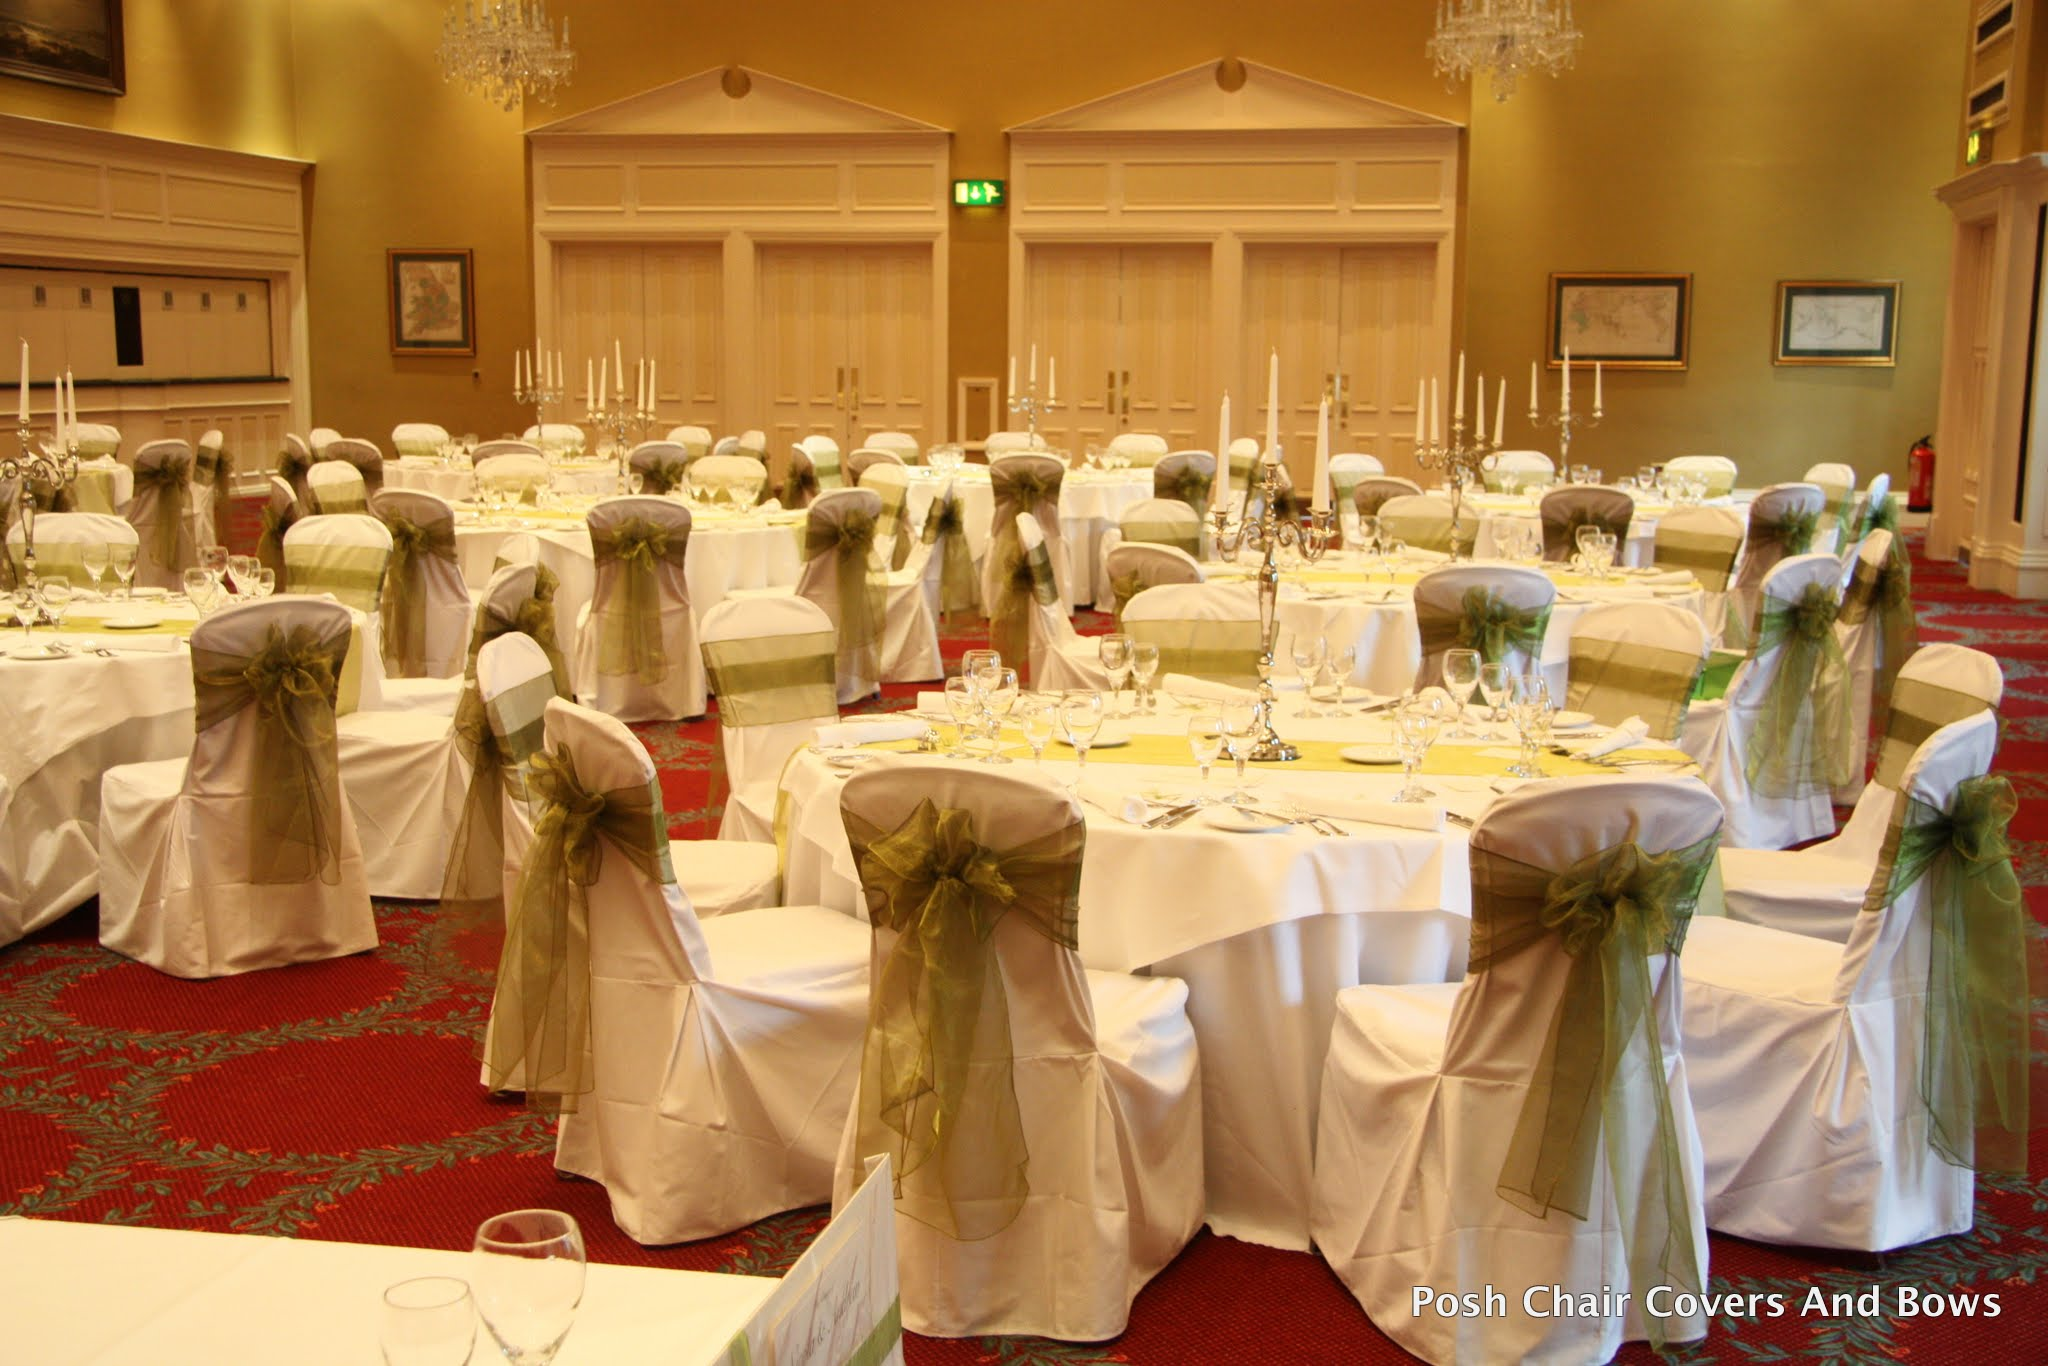 wedding chair cover hire sunderland dining room table with 6 chairs posh covers bows chiavari flower wall gisborough hall cleveland